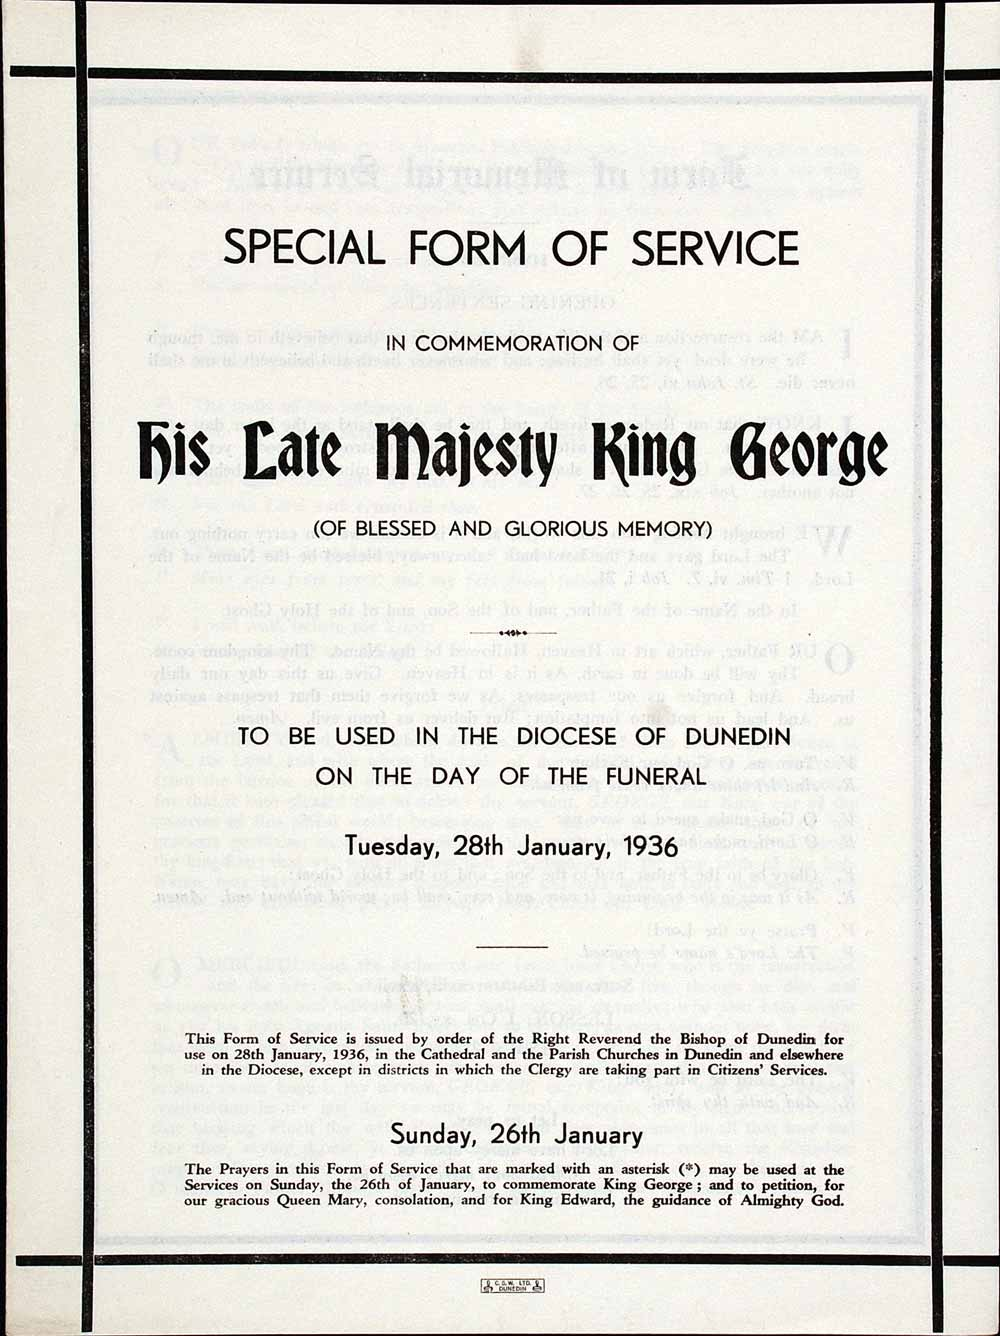 Special form of service in commemoration of His late Majesty King George … to be used in the Diocese of Dunedin on … Tuesday, 28th January, 1936. Dunedin: C. & W. Ltd., [1936].